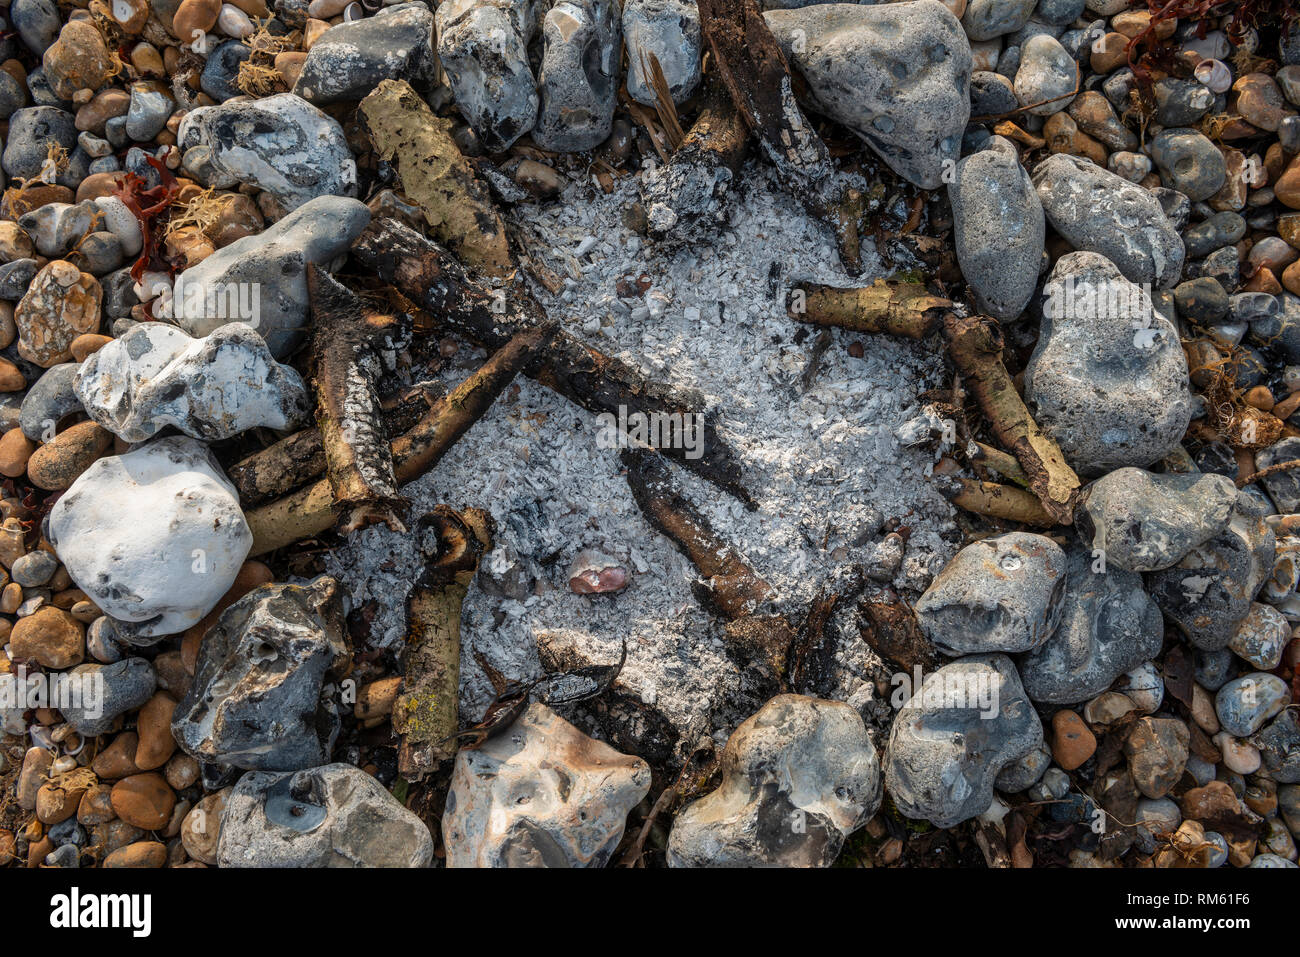 Remains of a small fire on a pebble beach - Stock Image